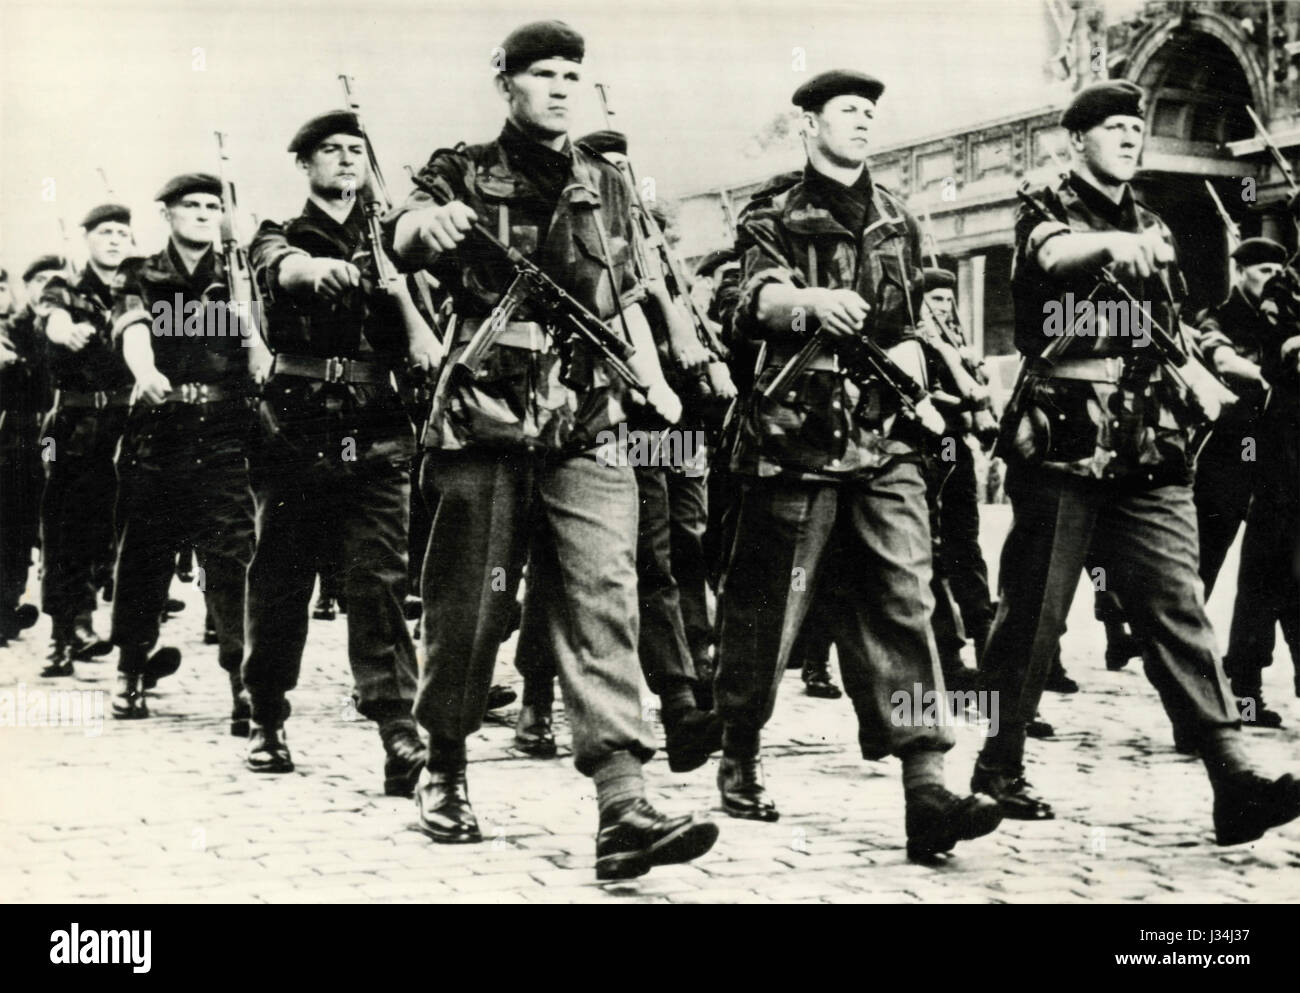 East Germany troops marching, East Berlin - Stock Image